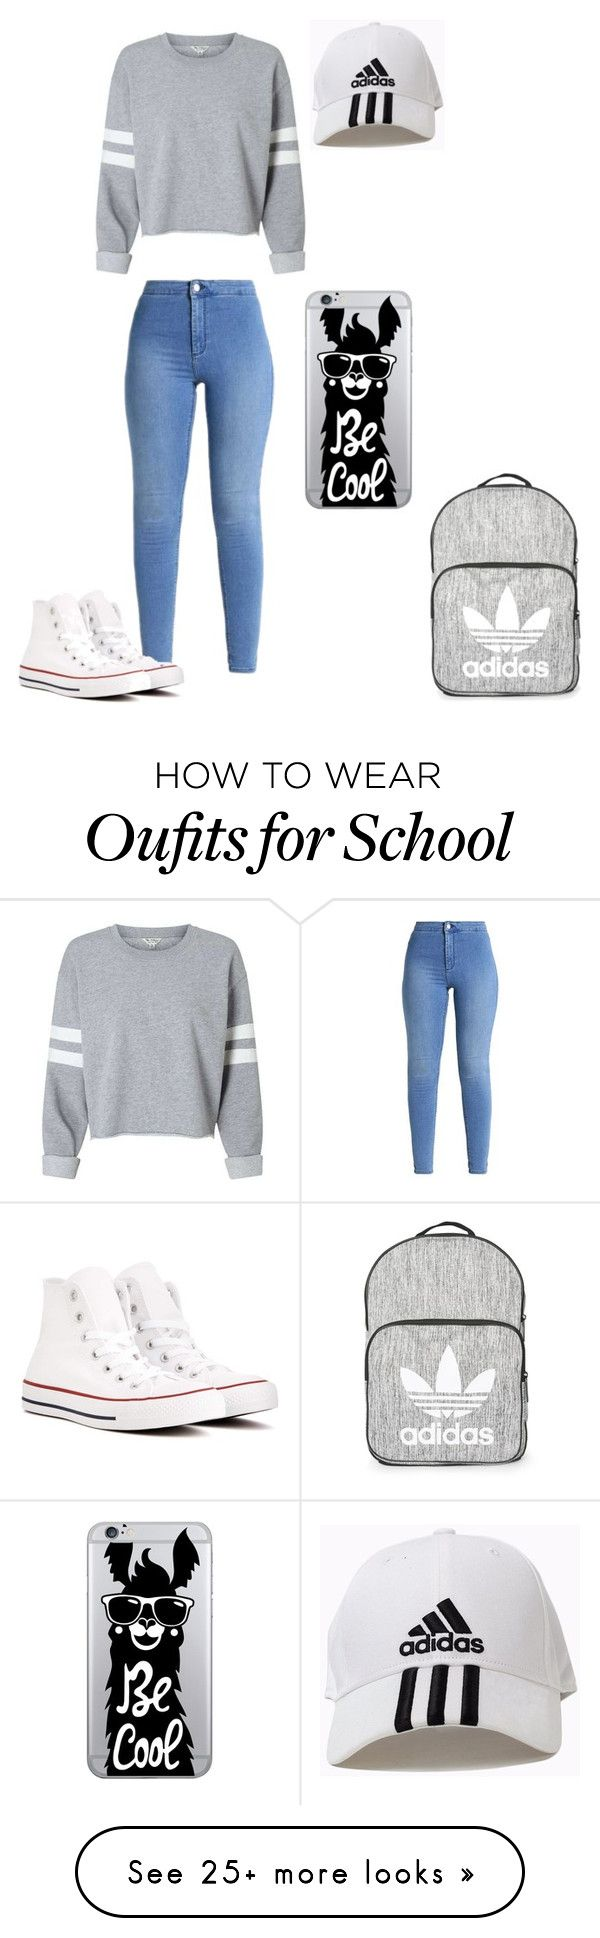 """Caydence back too school"" by emilio19 on Polyvore featuring Converse, Topshop, adidas and OTM Essentials"